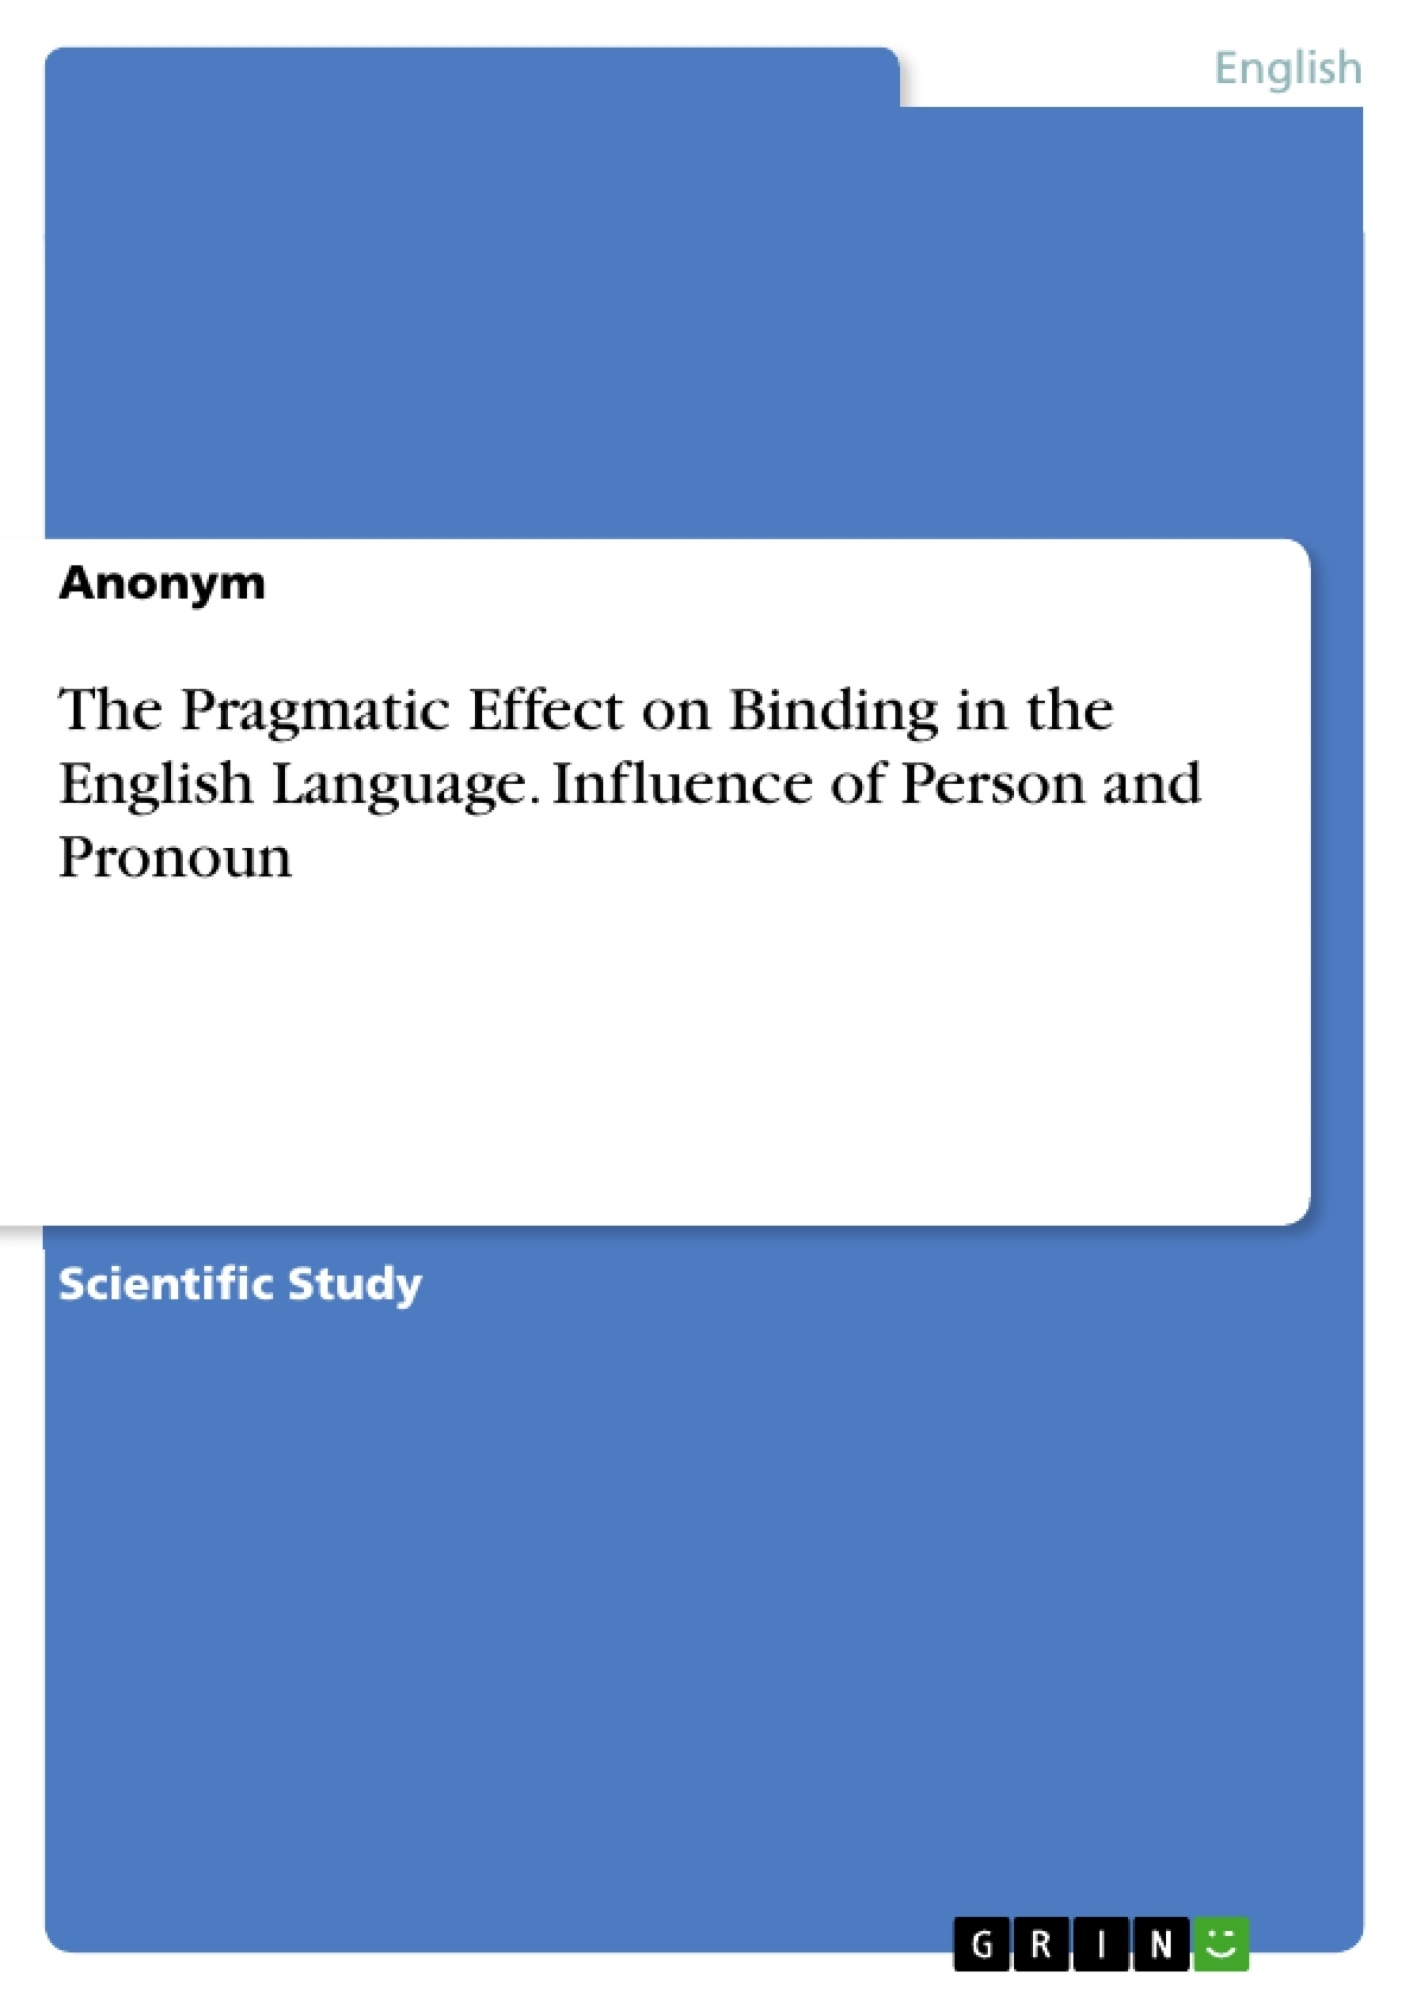 Title: The Pragmatic Effect on Binding in the English Language. Influence of Person and Pronoun